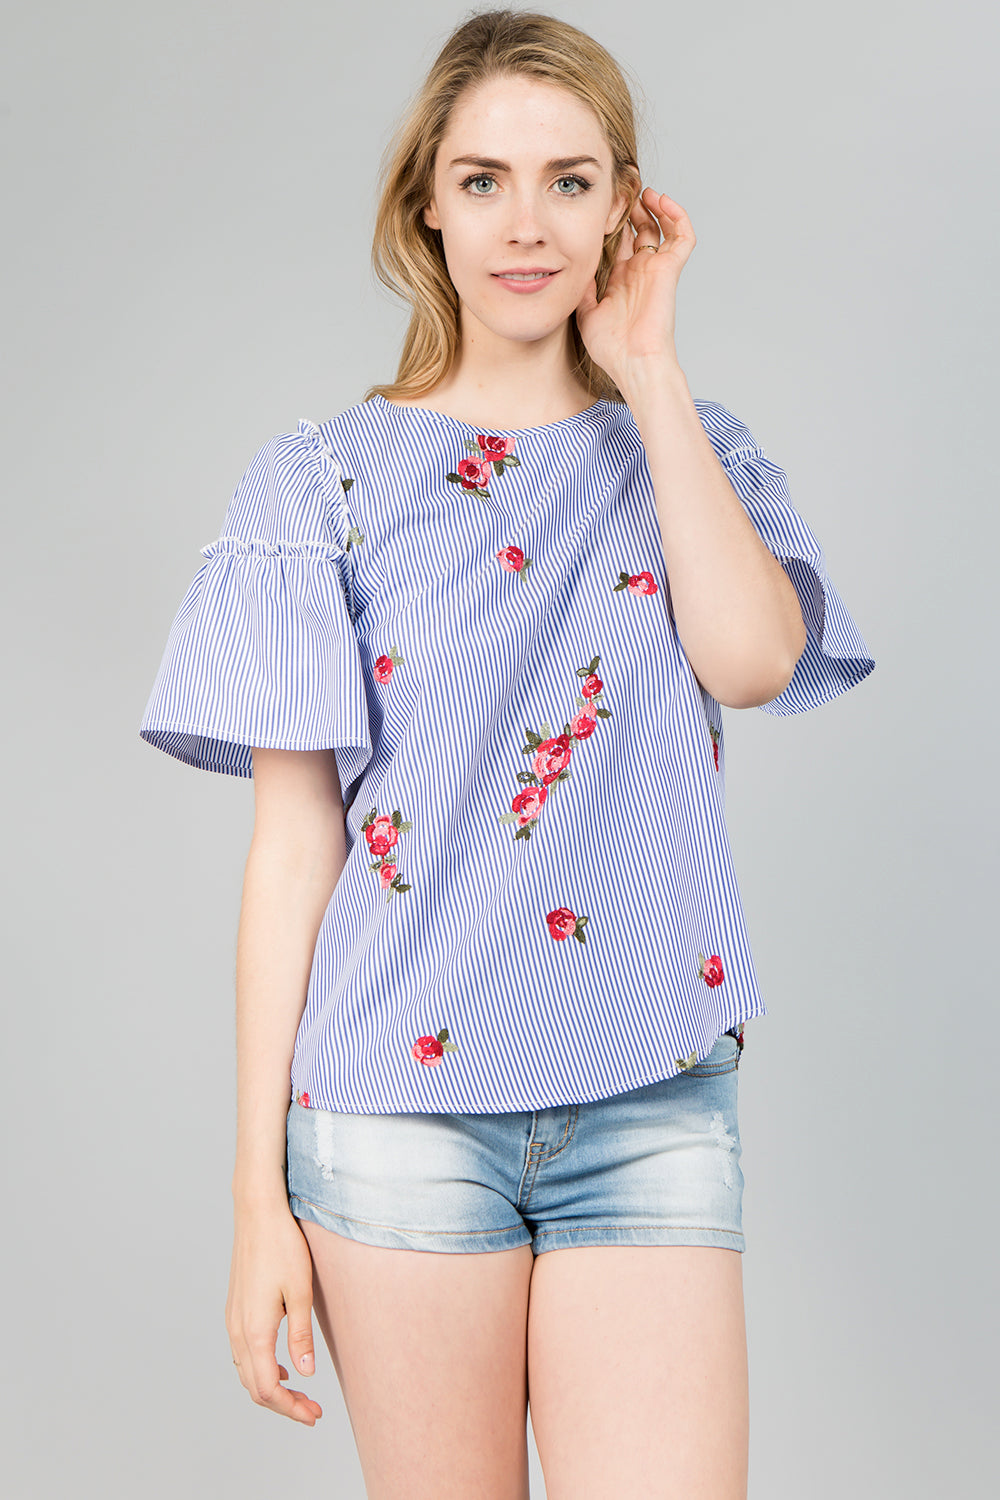 f04cc1cb T4021 Floral Embroidery Striped Top – SeeandBeSeen